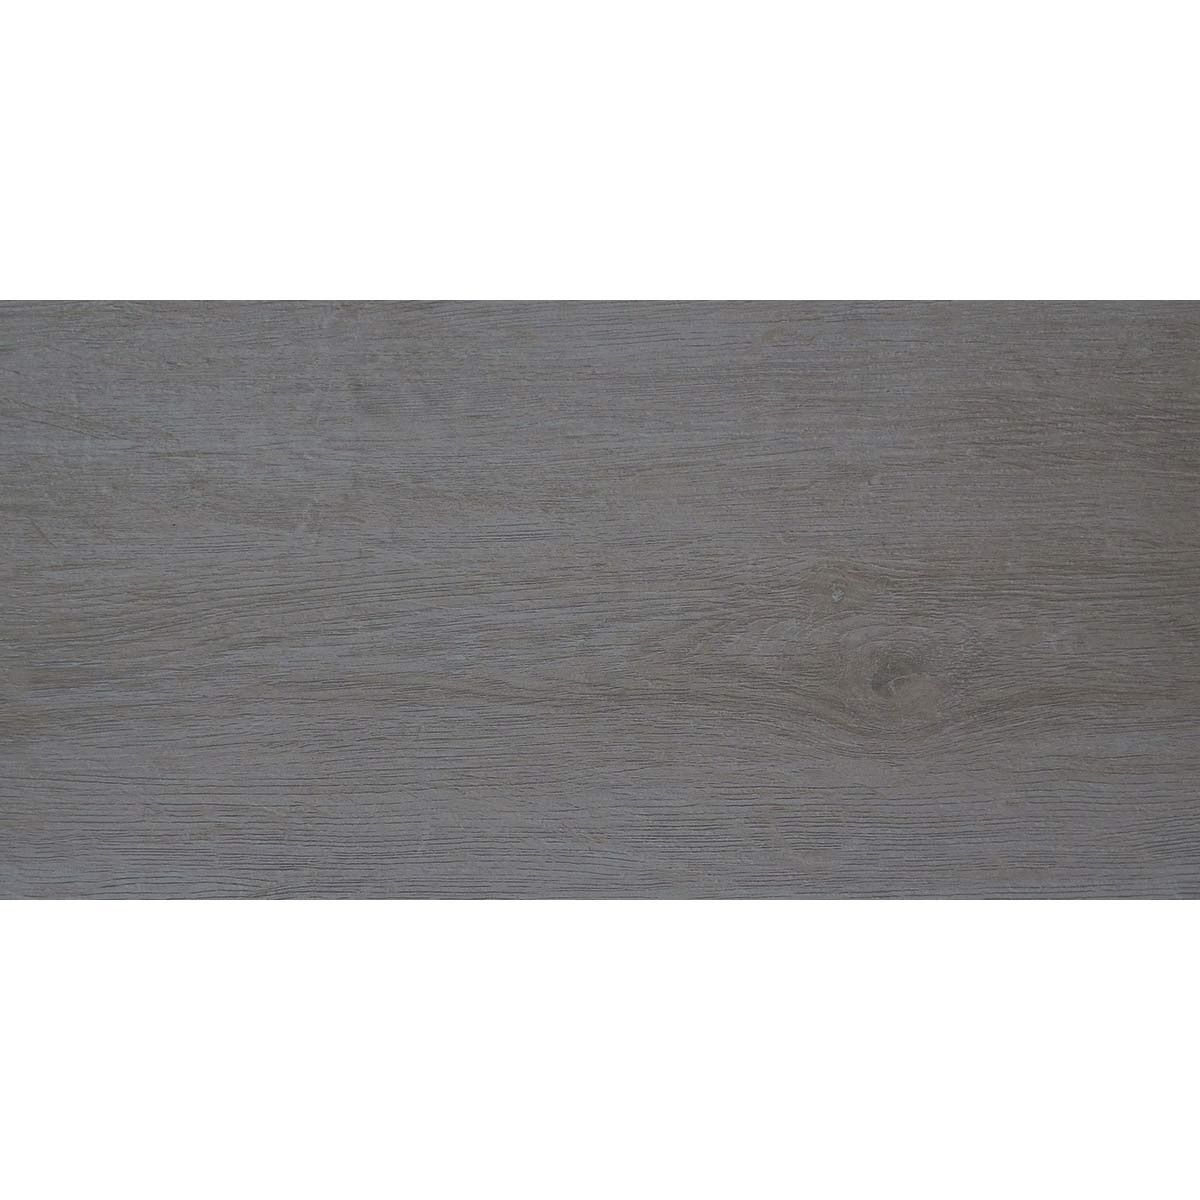 Rustic Glazed Porcelain Floor and Wall Tile - 24 ln. x 12 ln. (PM68032-2)